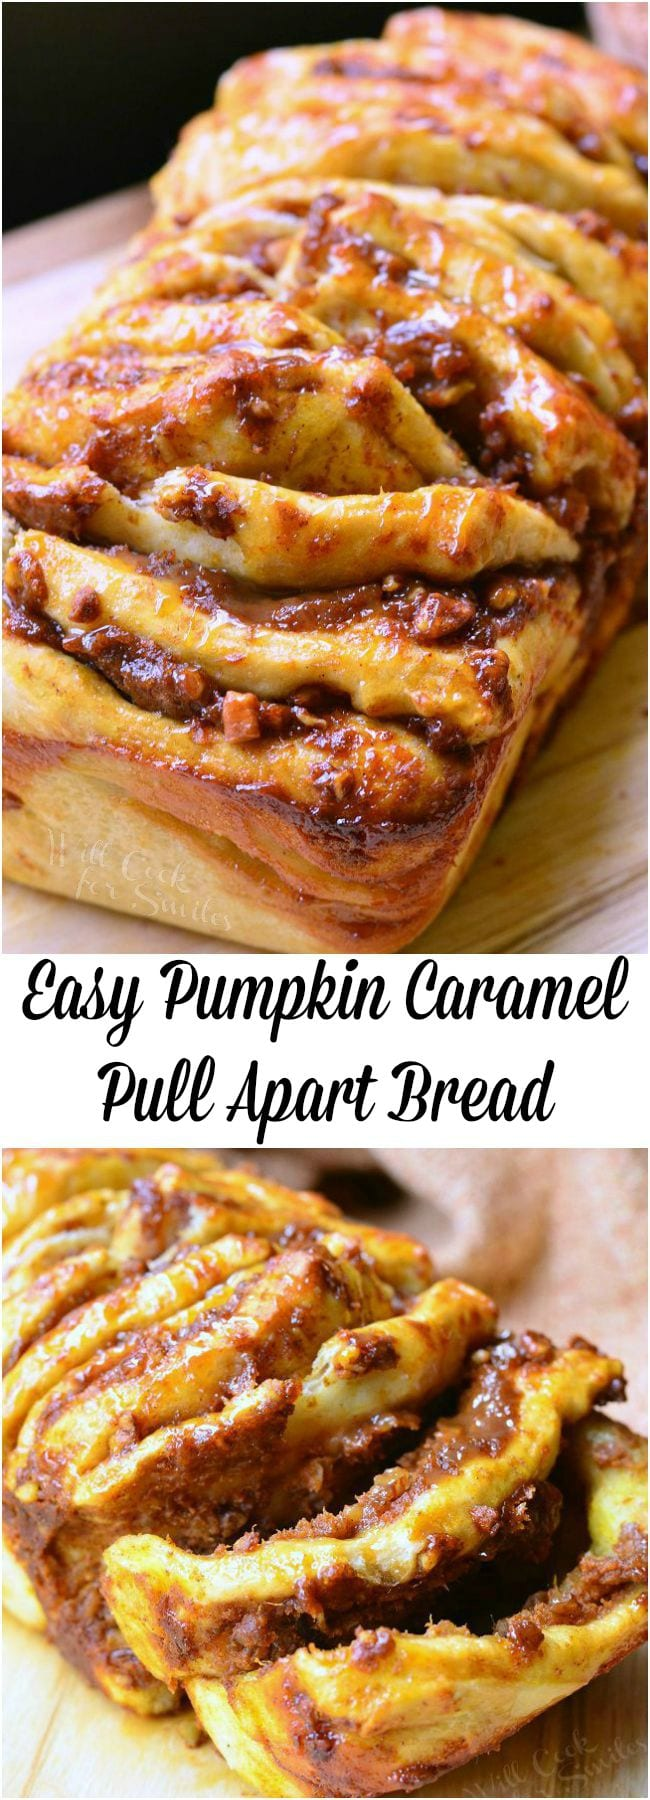 Easy Caramel Pumpkin Pull Apart Bread. Quick and easy pull apart bread where each layer is slathered in a sweet combination of pumpkin, caramel, and pecans. #pumpkin #pullapart #bread #caramel